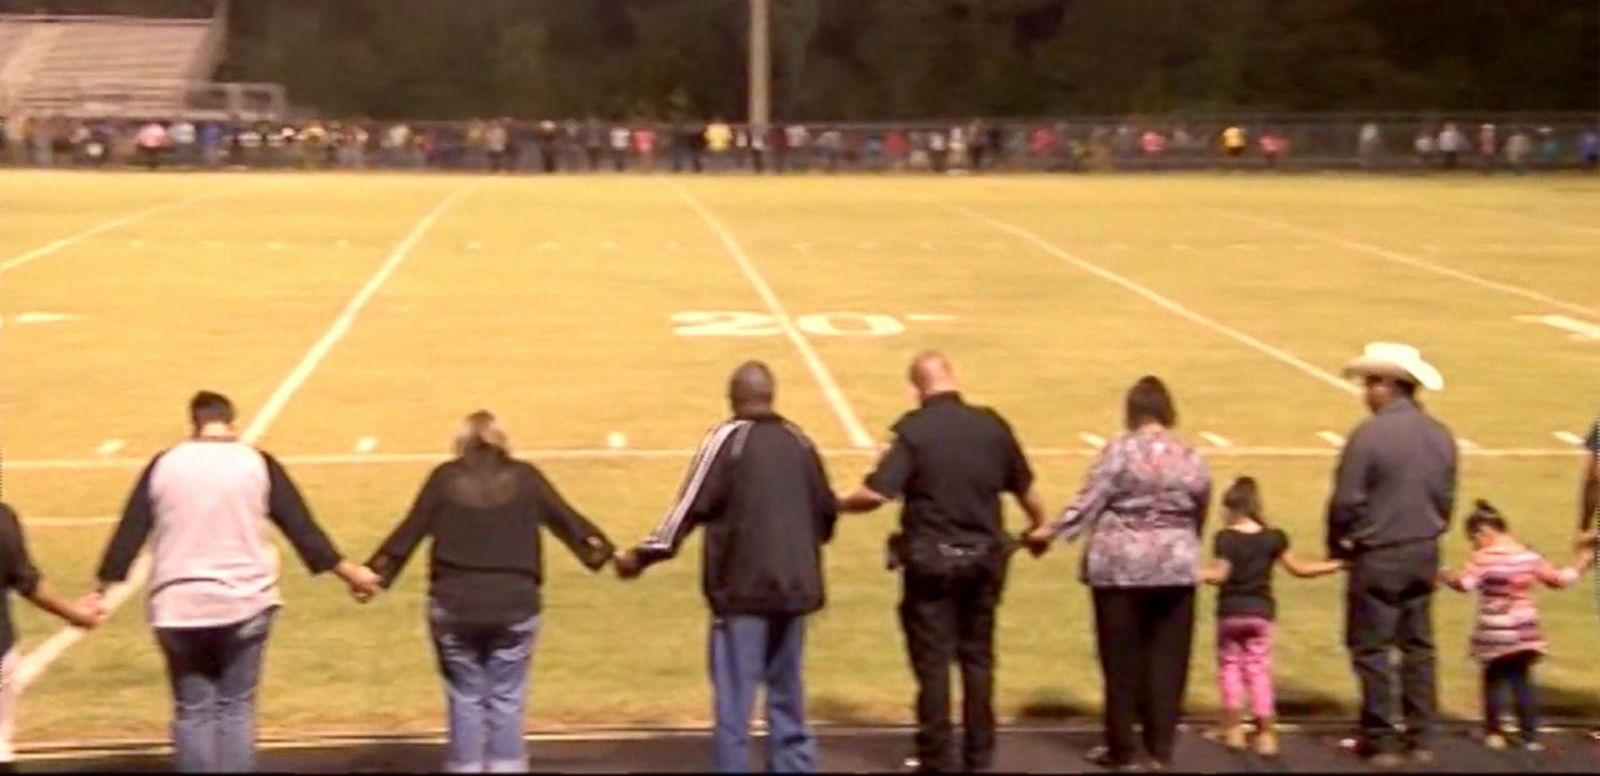 VIDEO: Returning to the Football Field Where a High School Player Collapsed